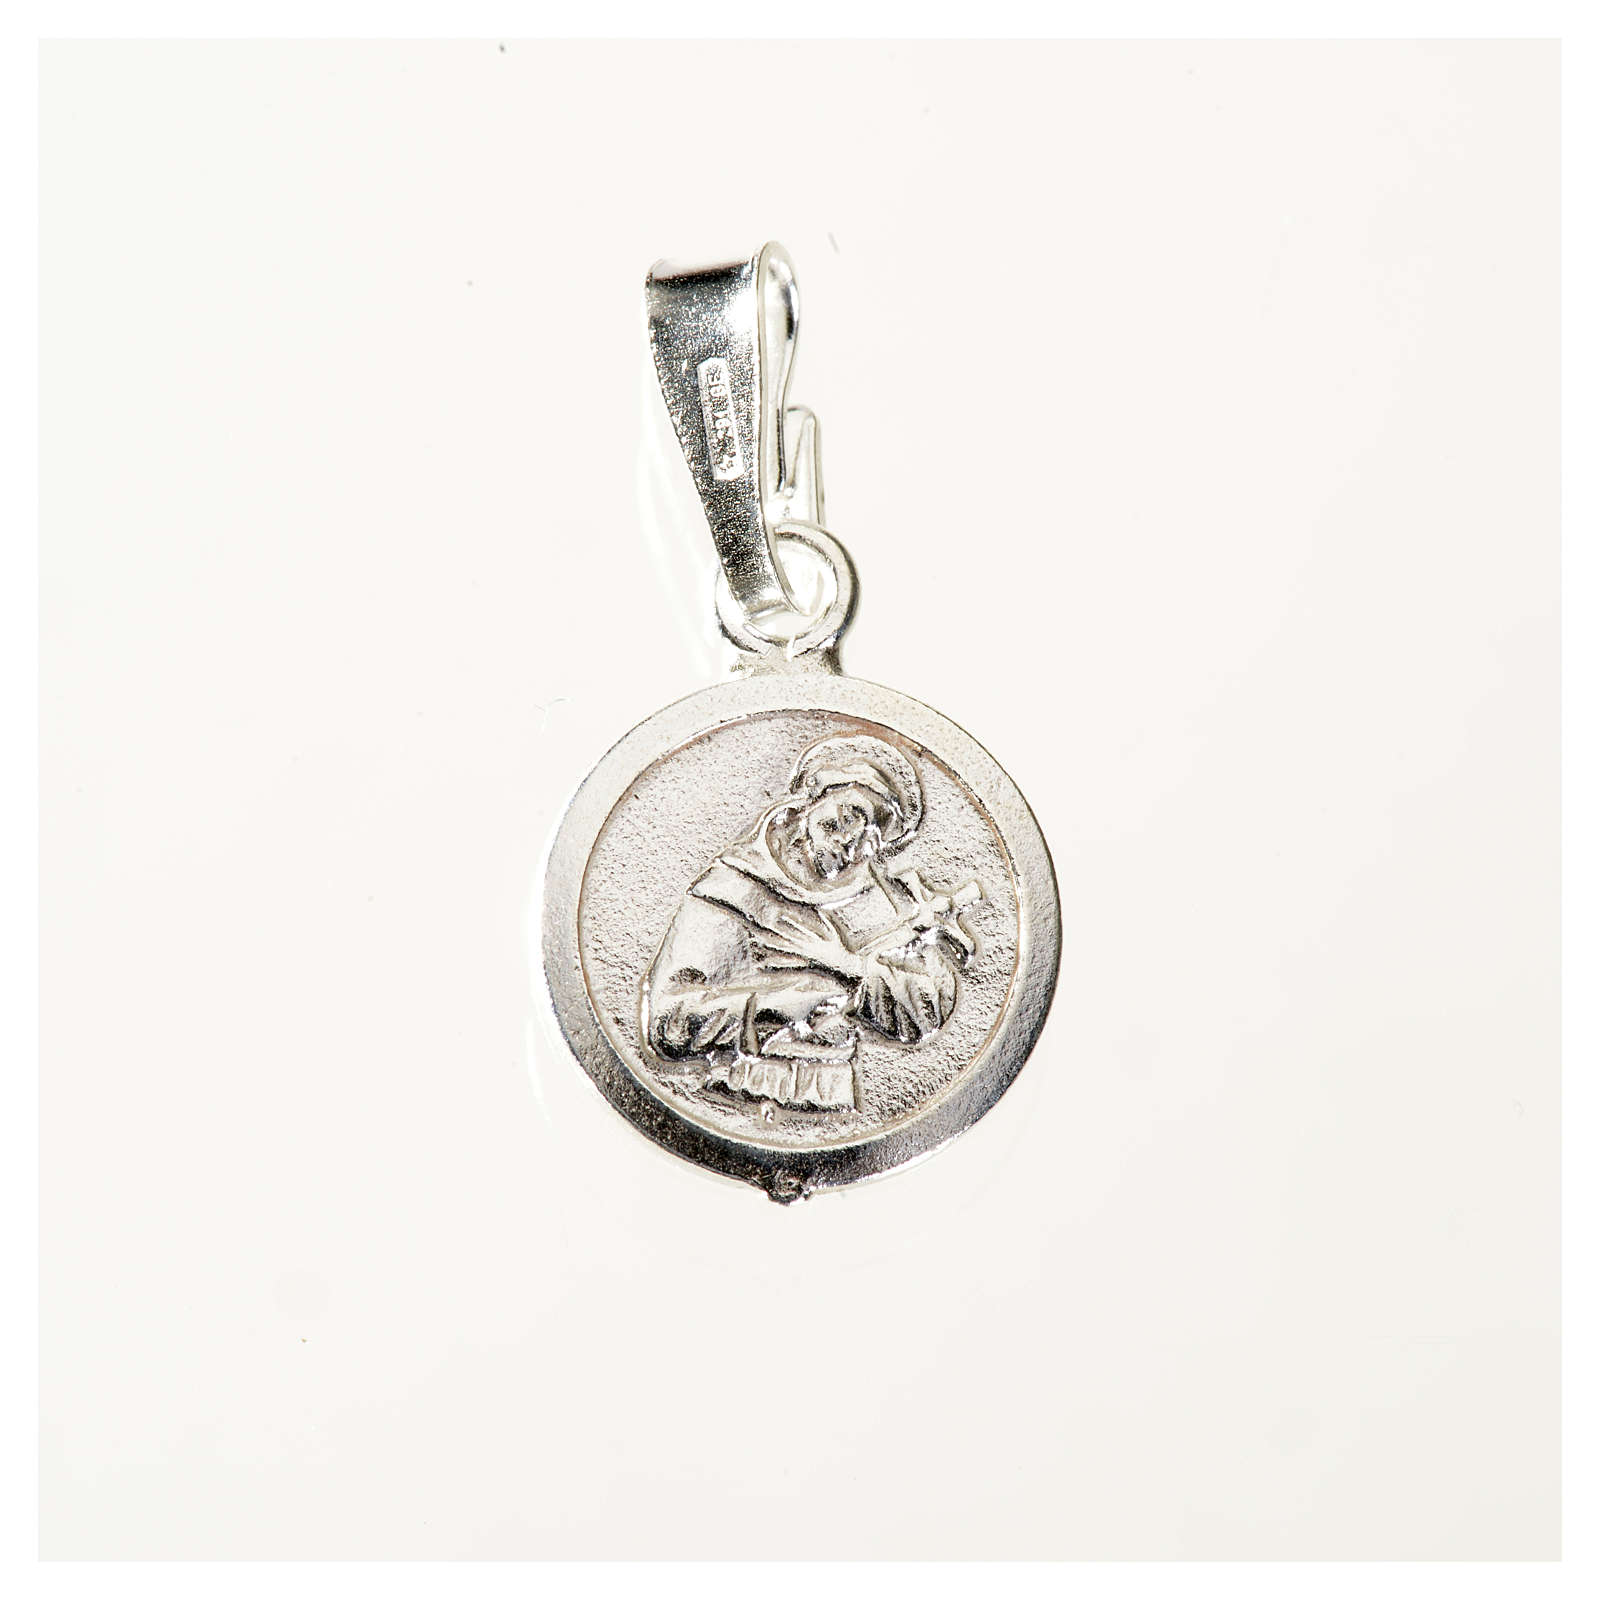 Pendant medal in sterling silver, Saint Francis 9mm 4